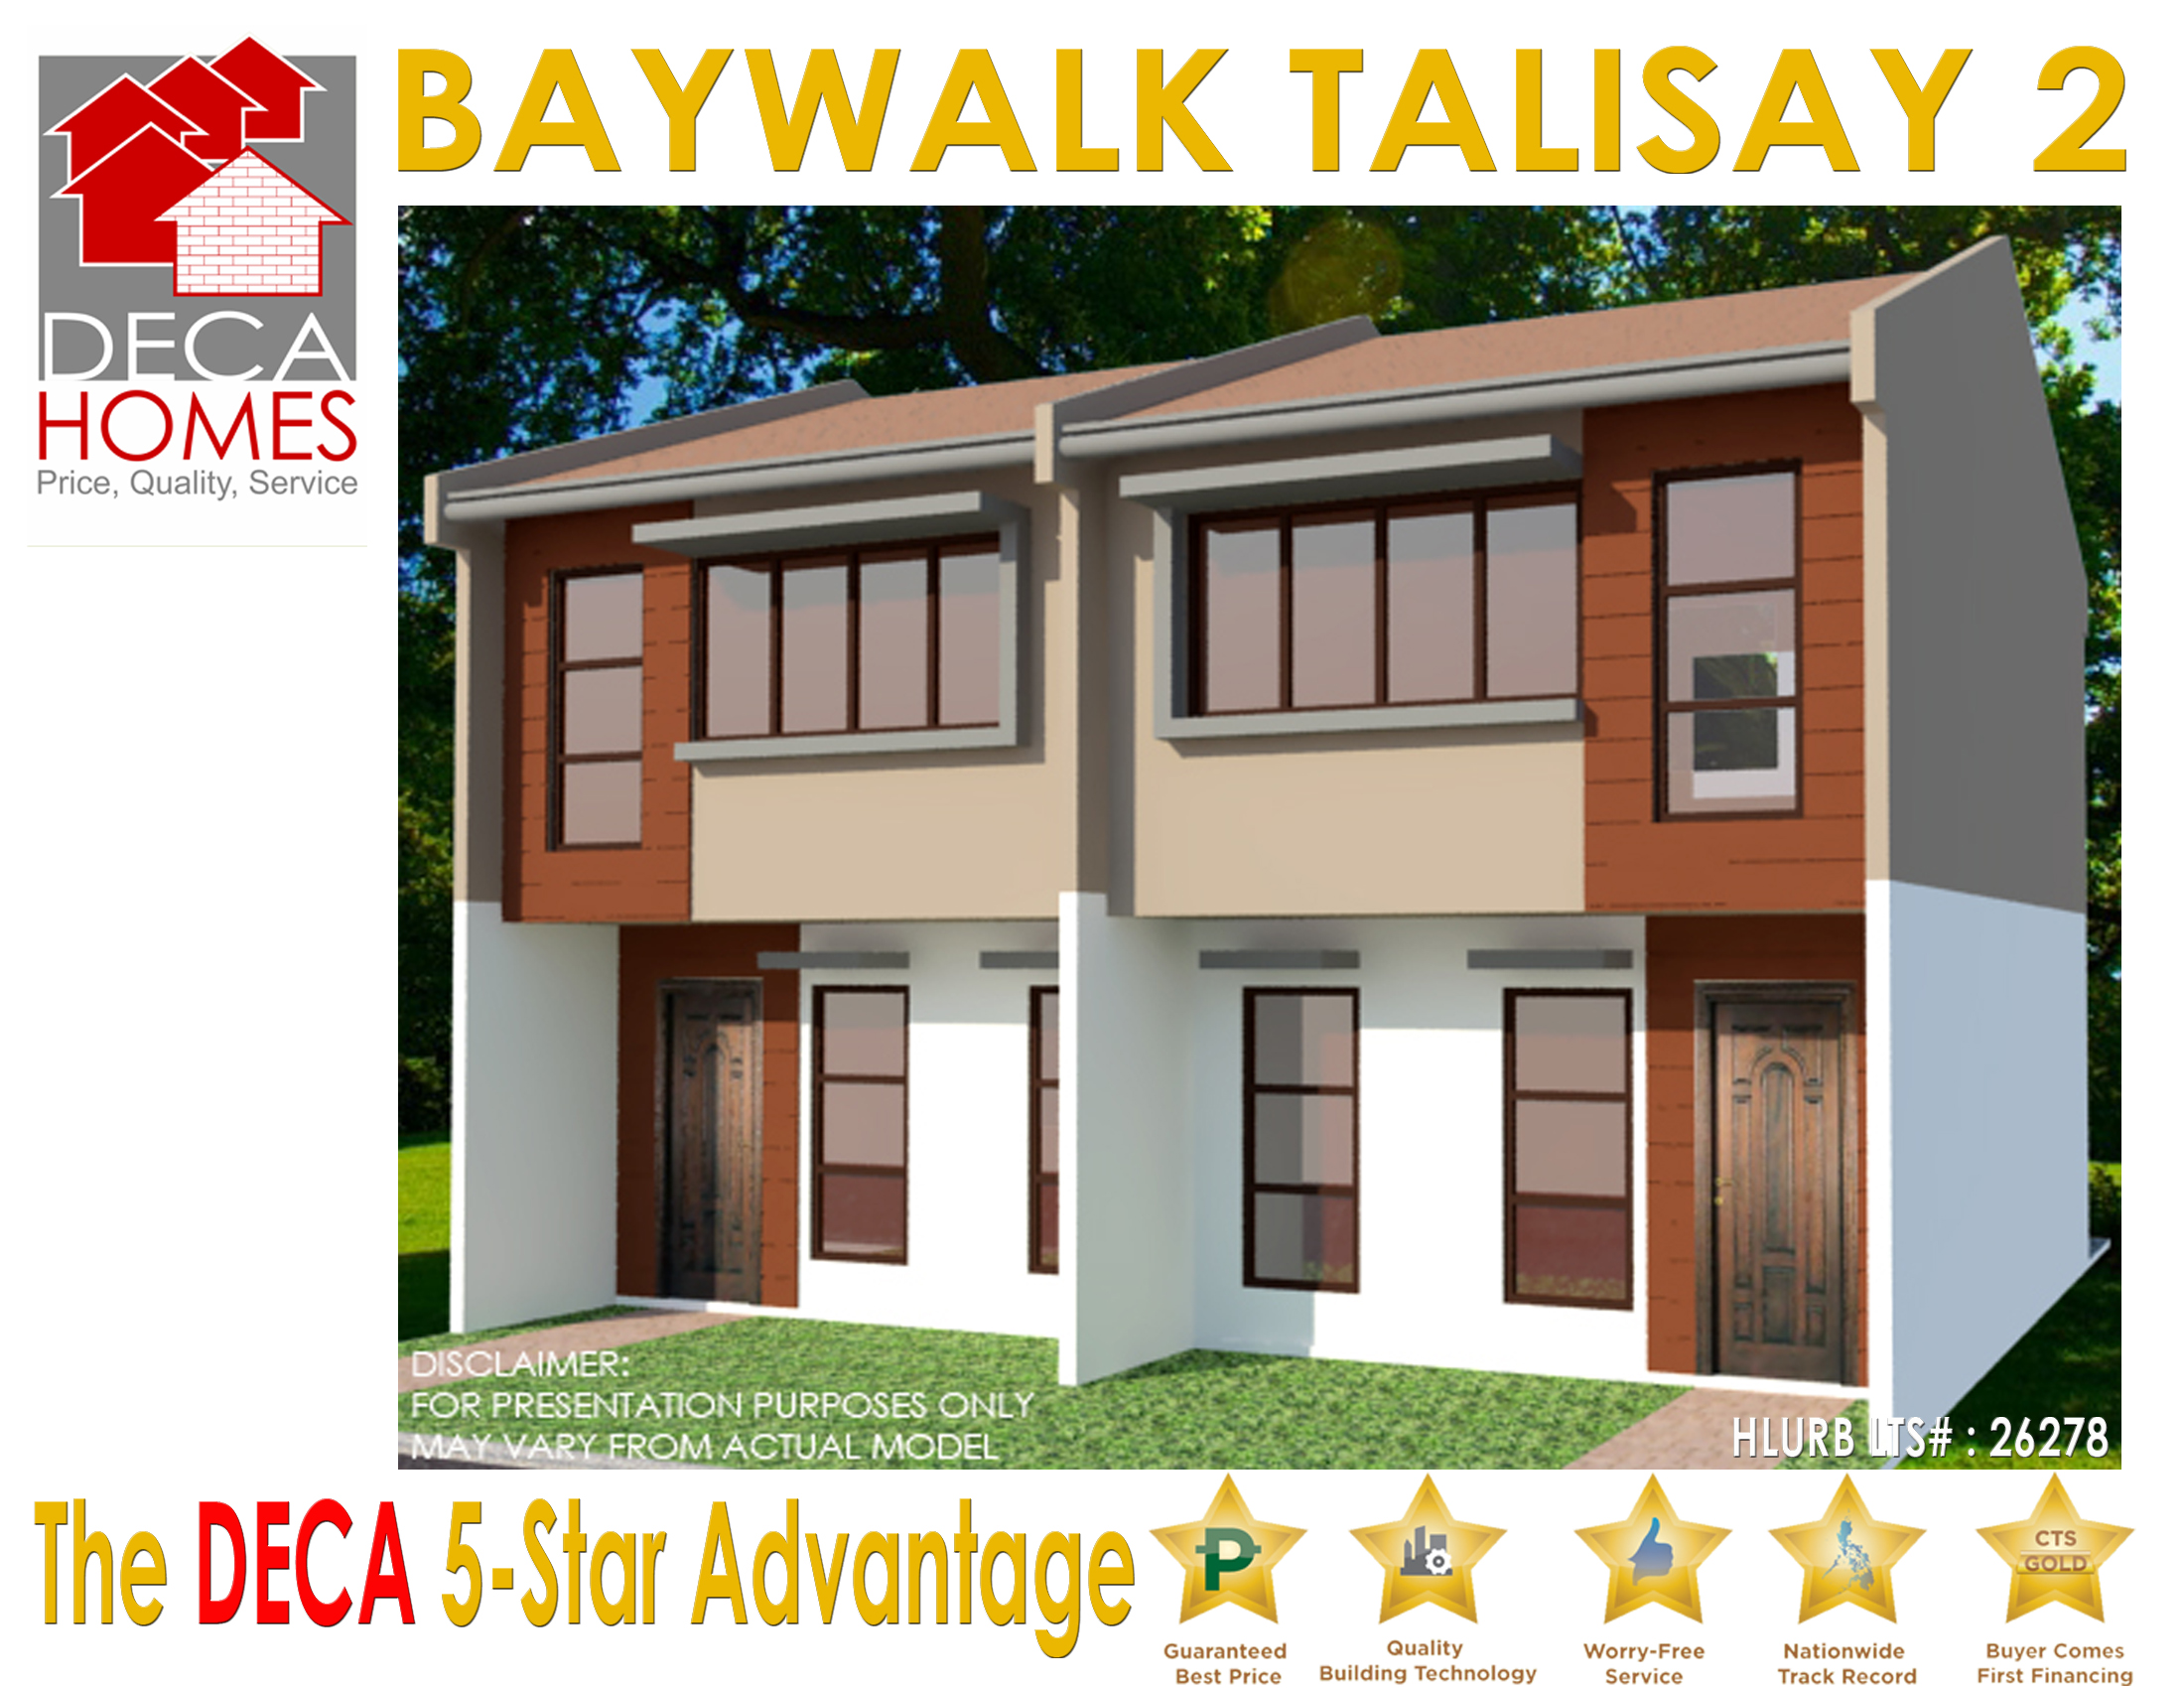 DECA HOMES BAYWALK TALISAY 2: Regular Unit Houses